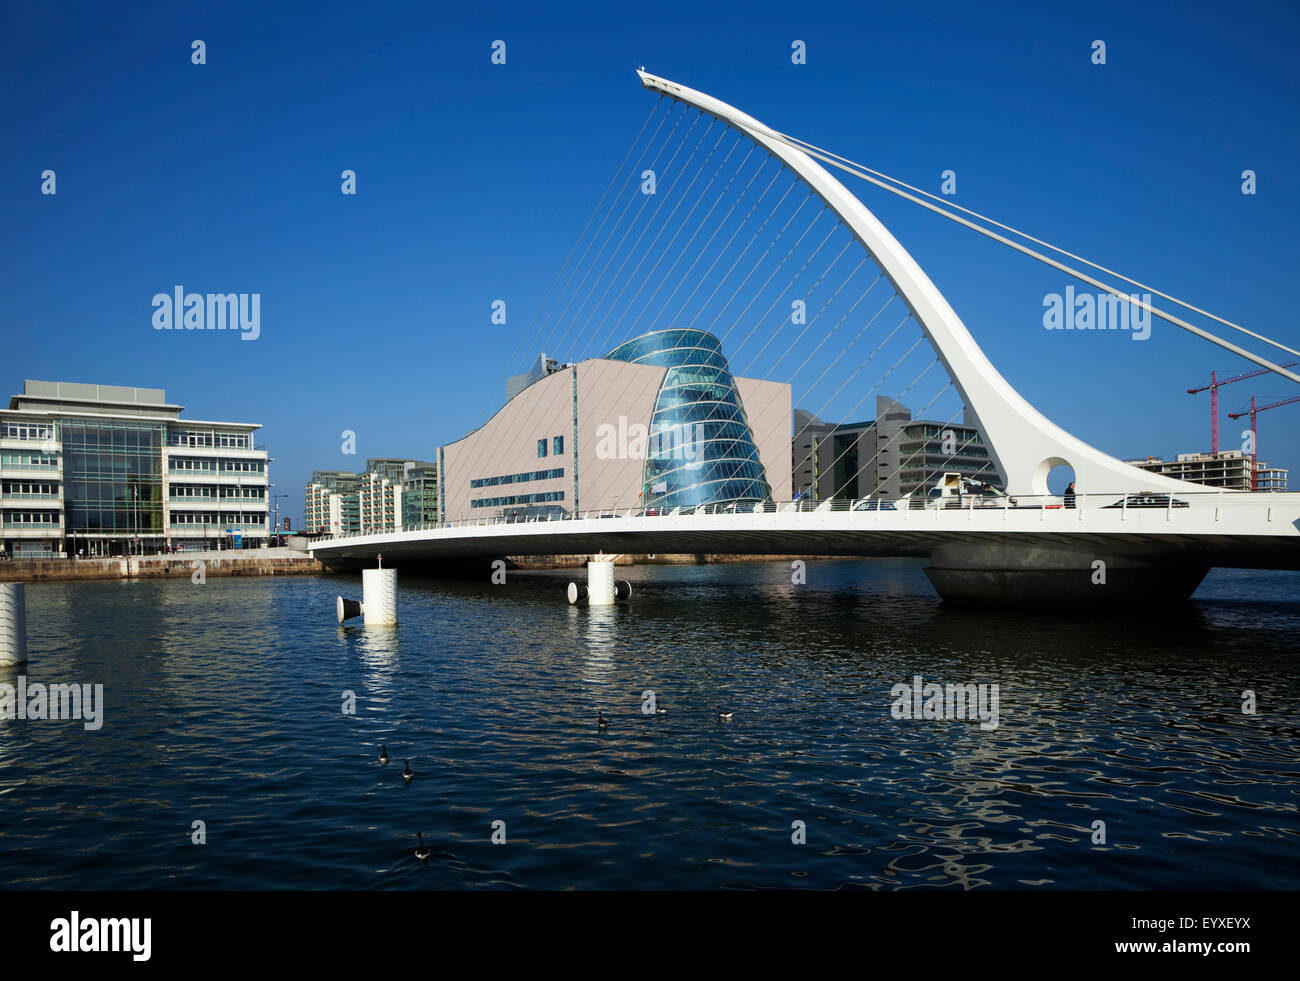 The Samual Beckett Bridge over the River Liffey,  and Dublin Convention Centre, Dublin City, Ireland - Stock Image